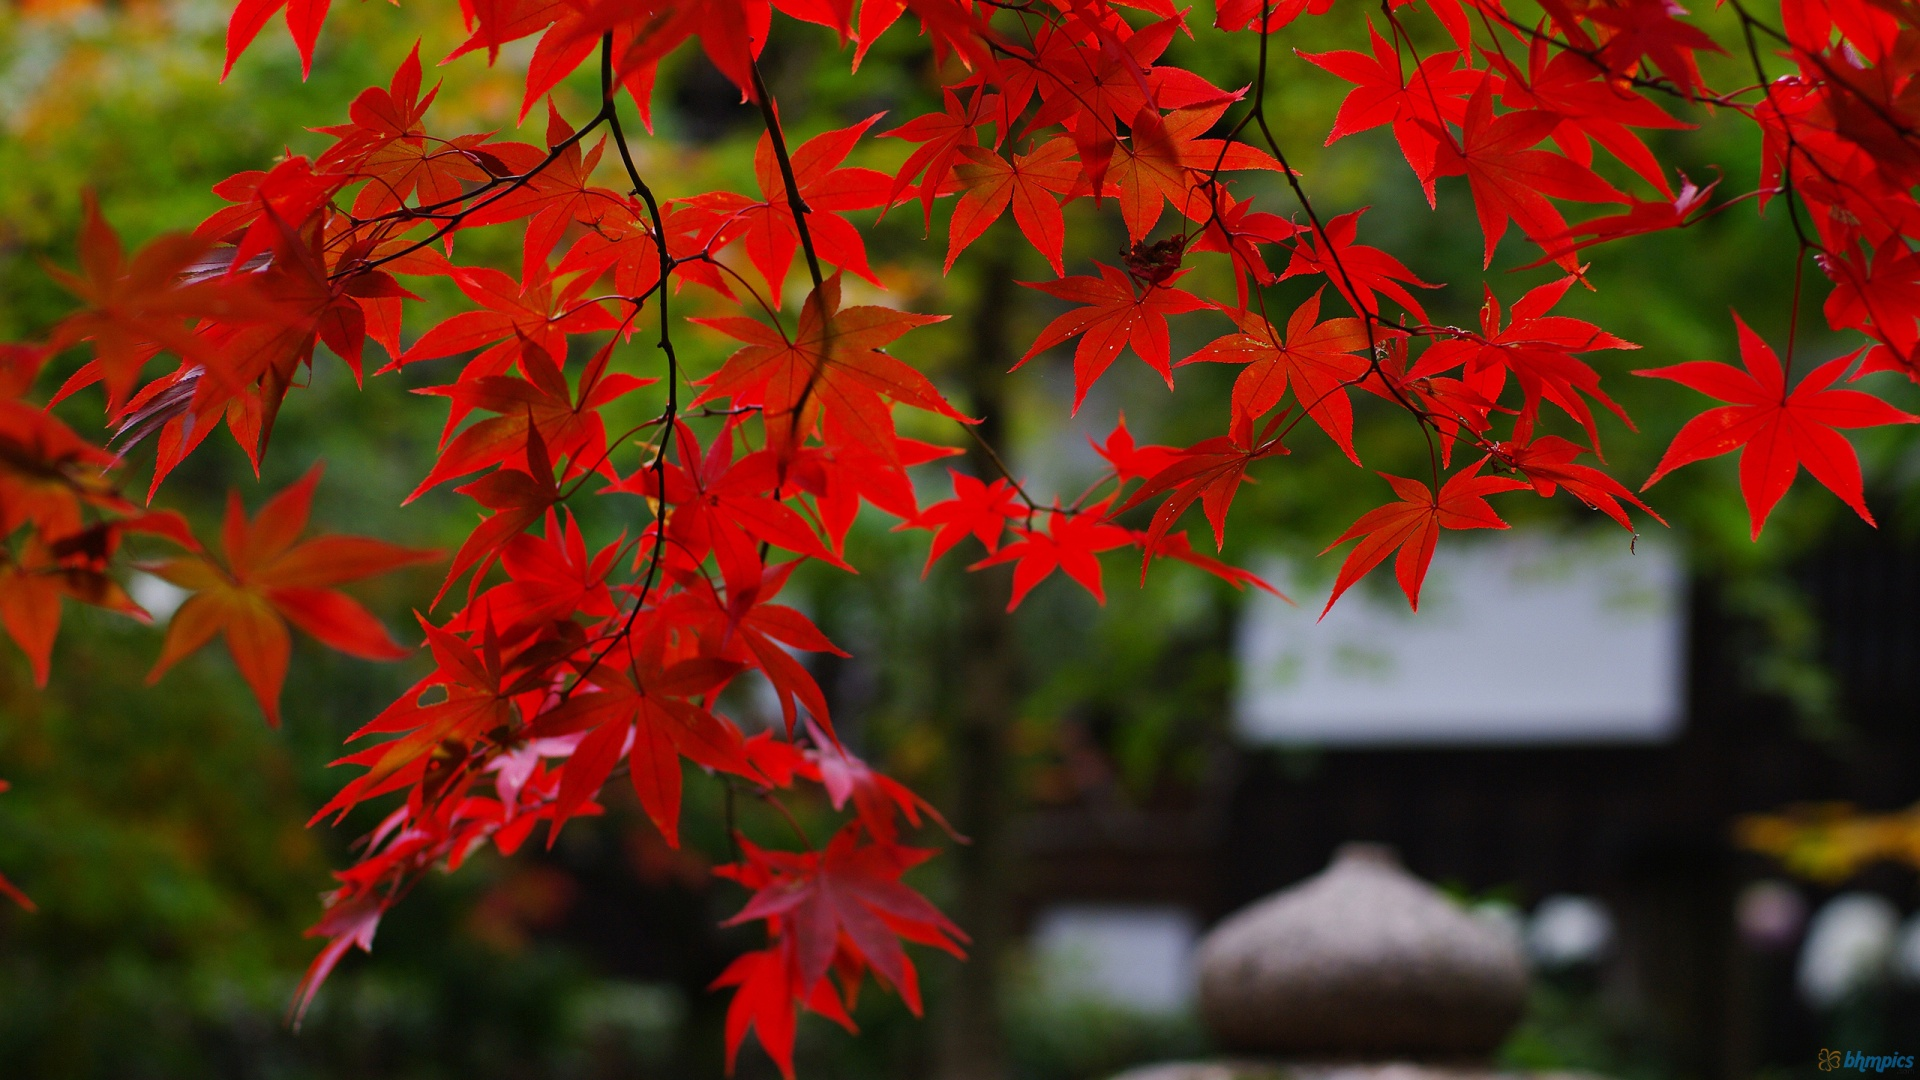 Autumn maple tree foliage